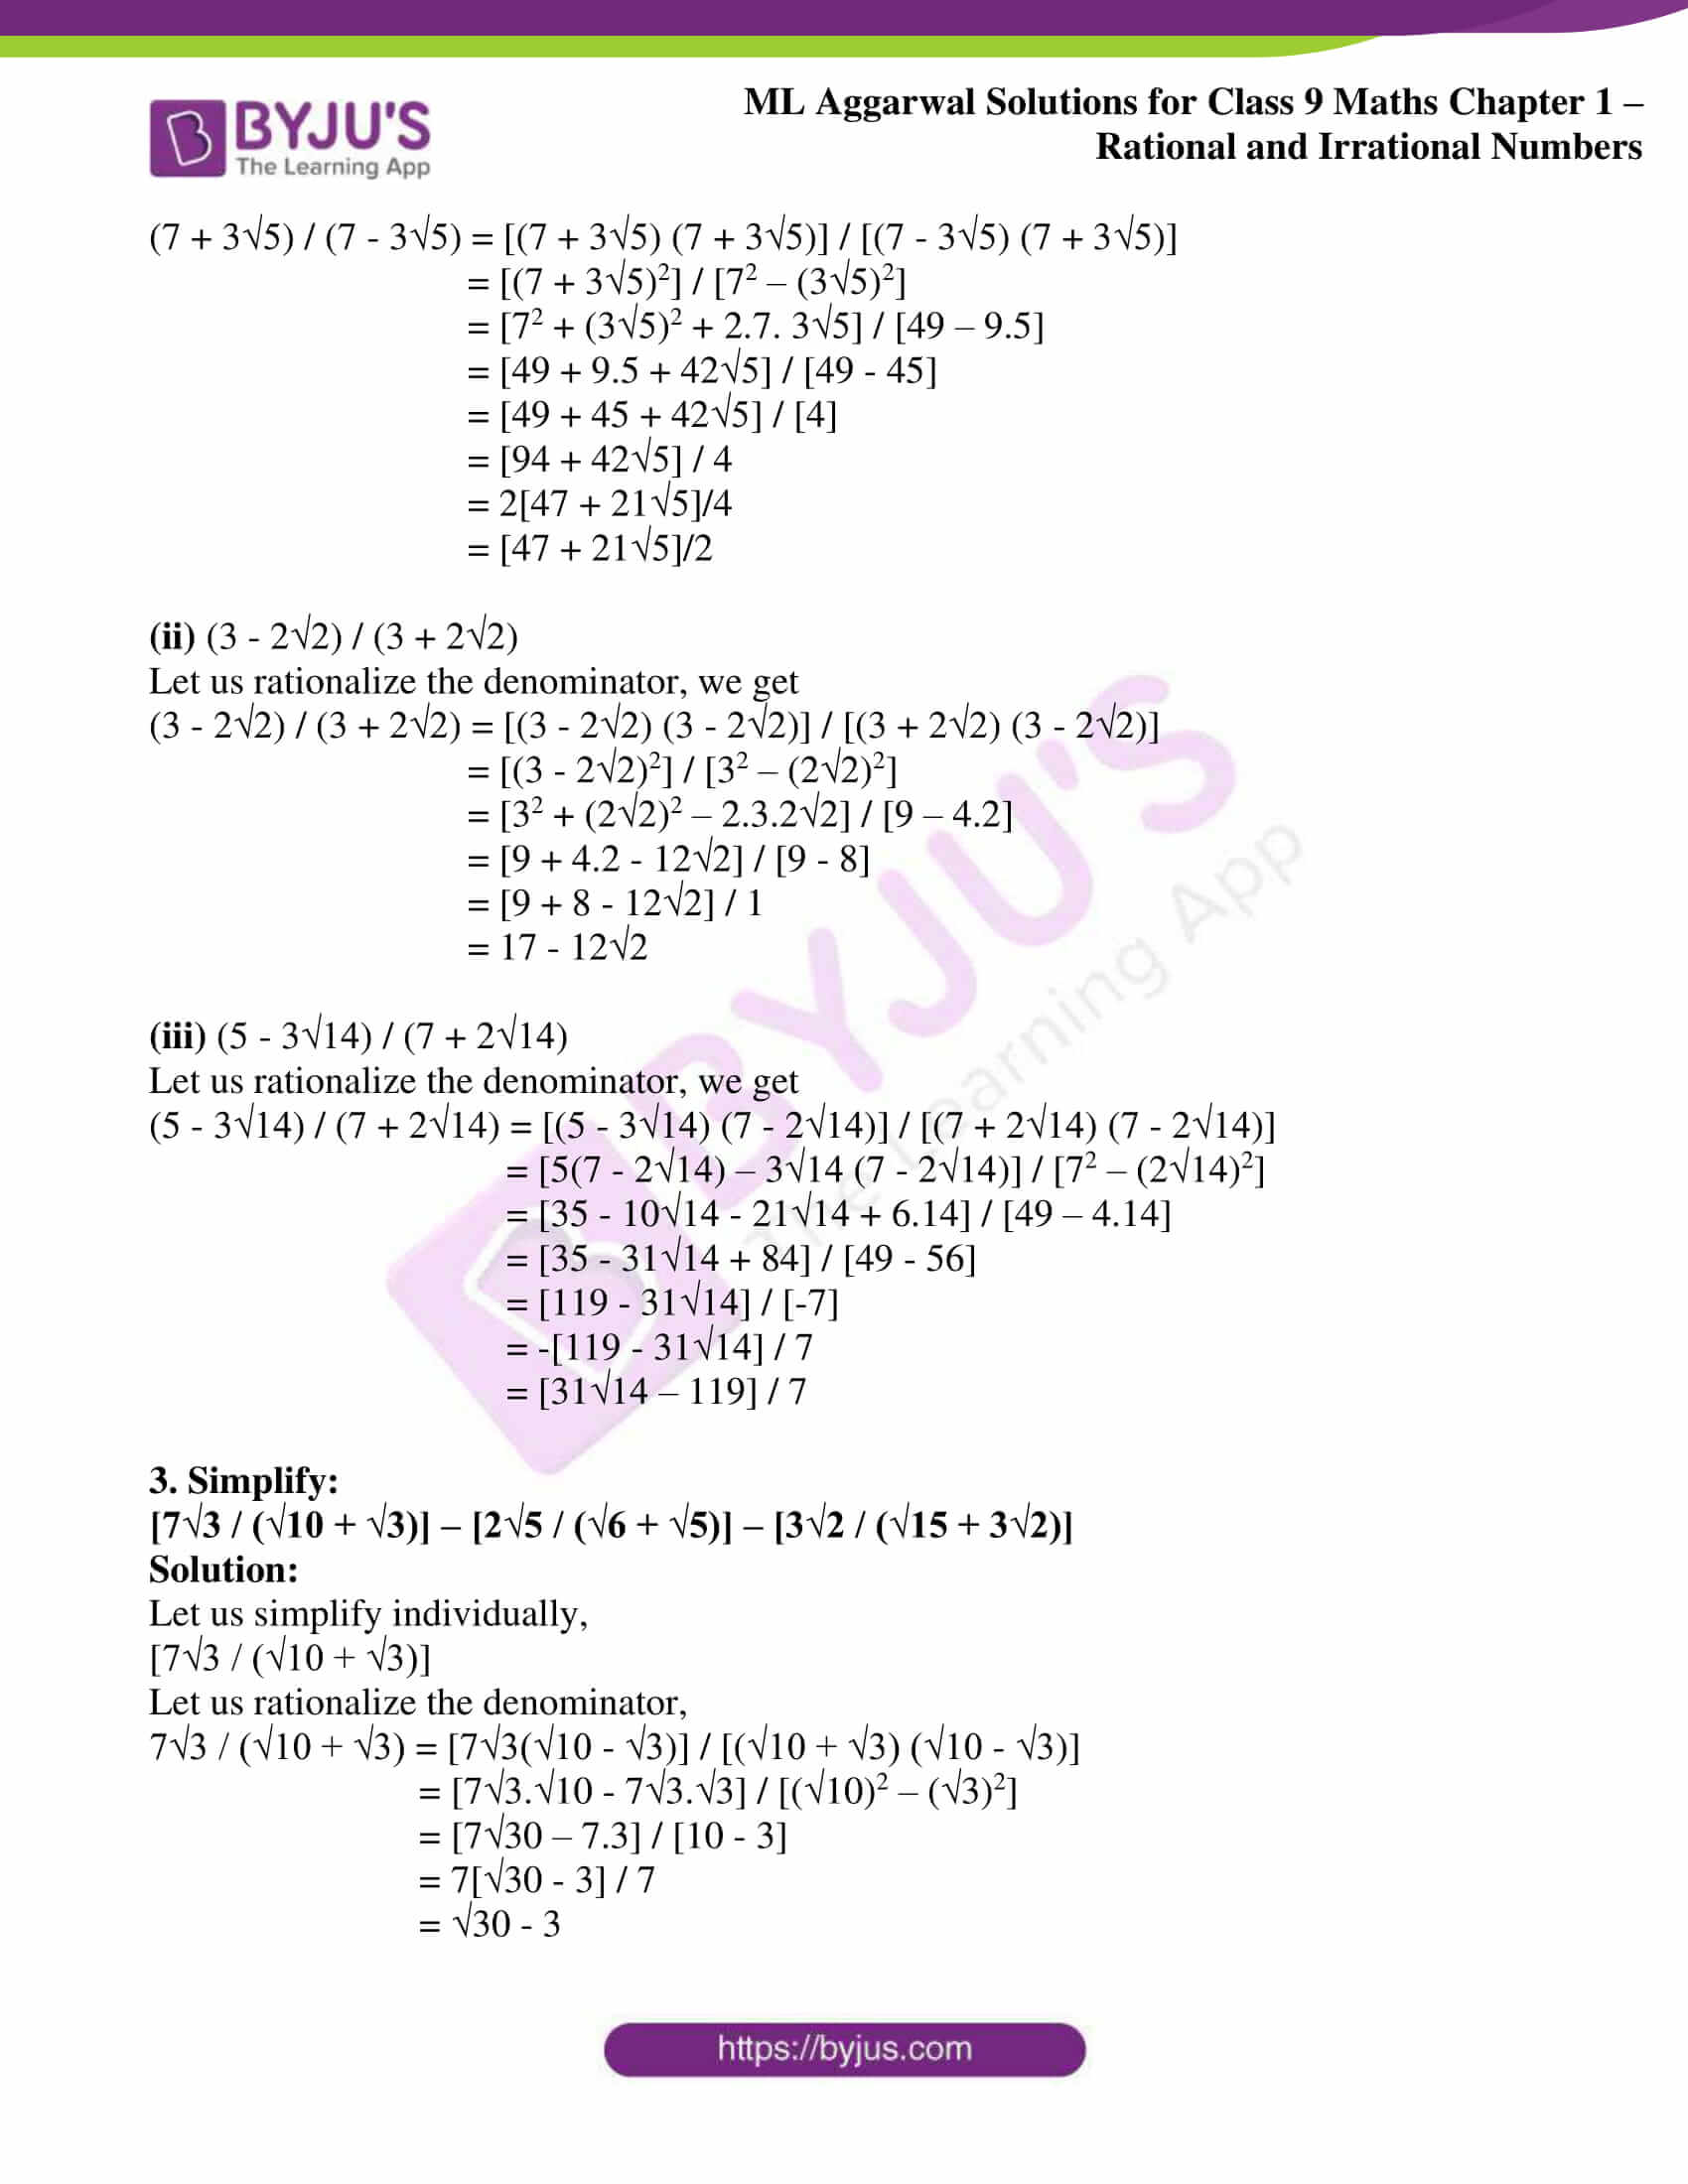 ml aggarwal solutions for class 9 maths chapter 1 51